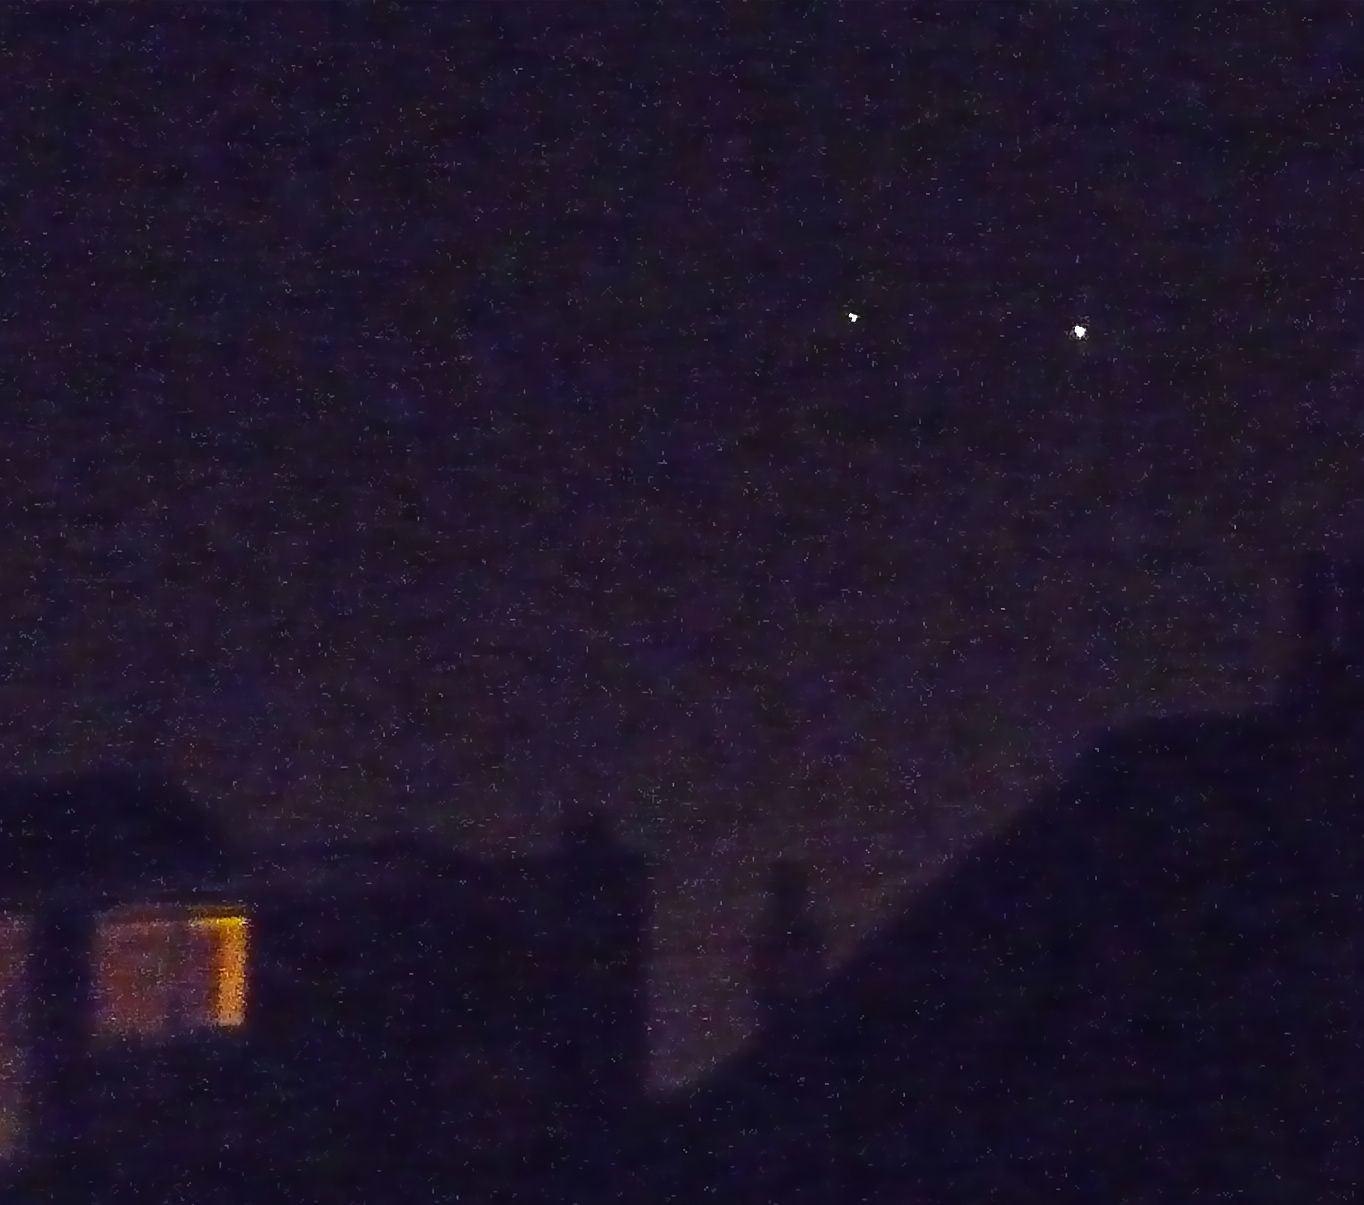 planets in the sky tonight - photo #28